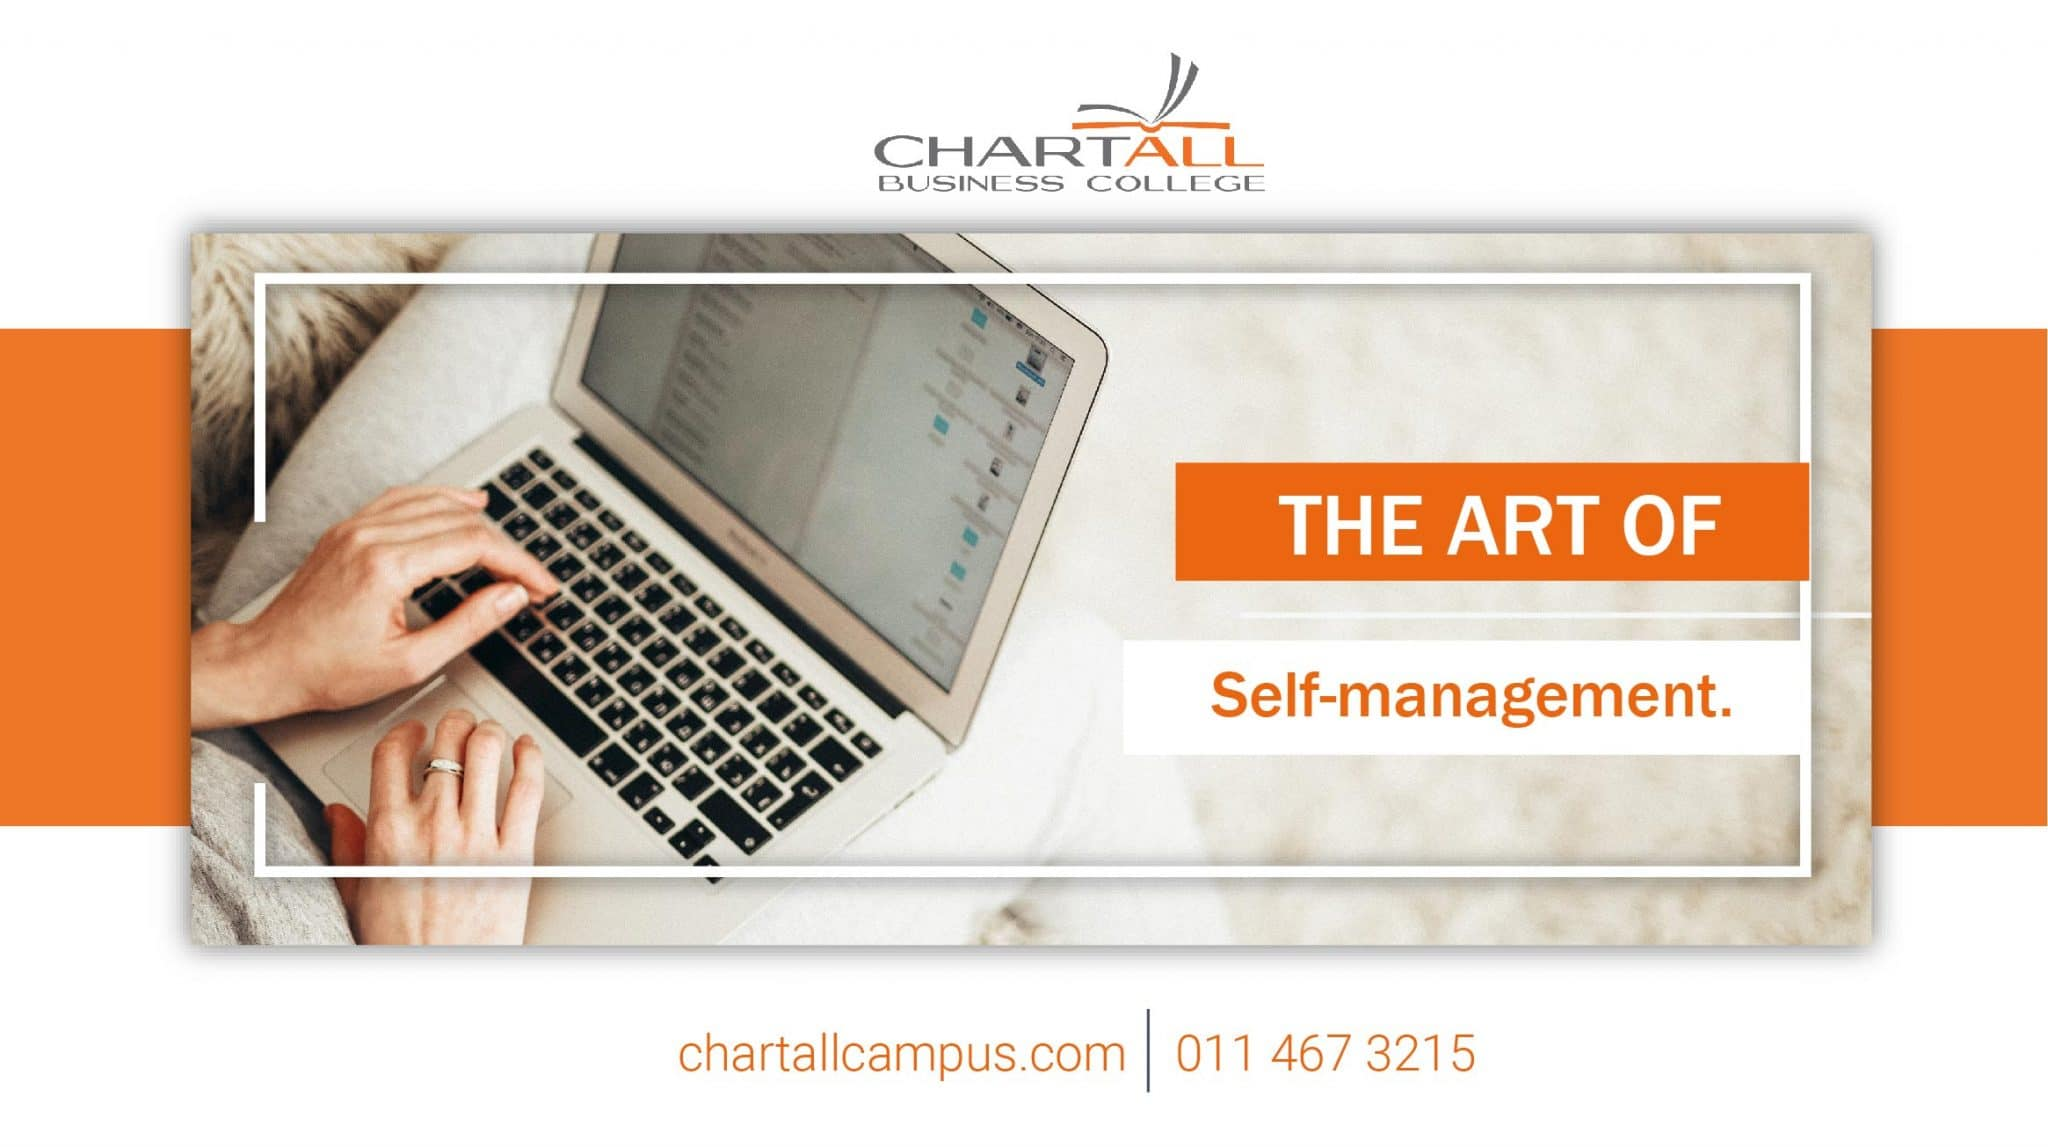 The art of self-management.